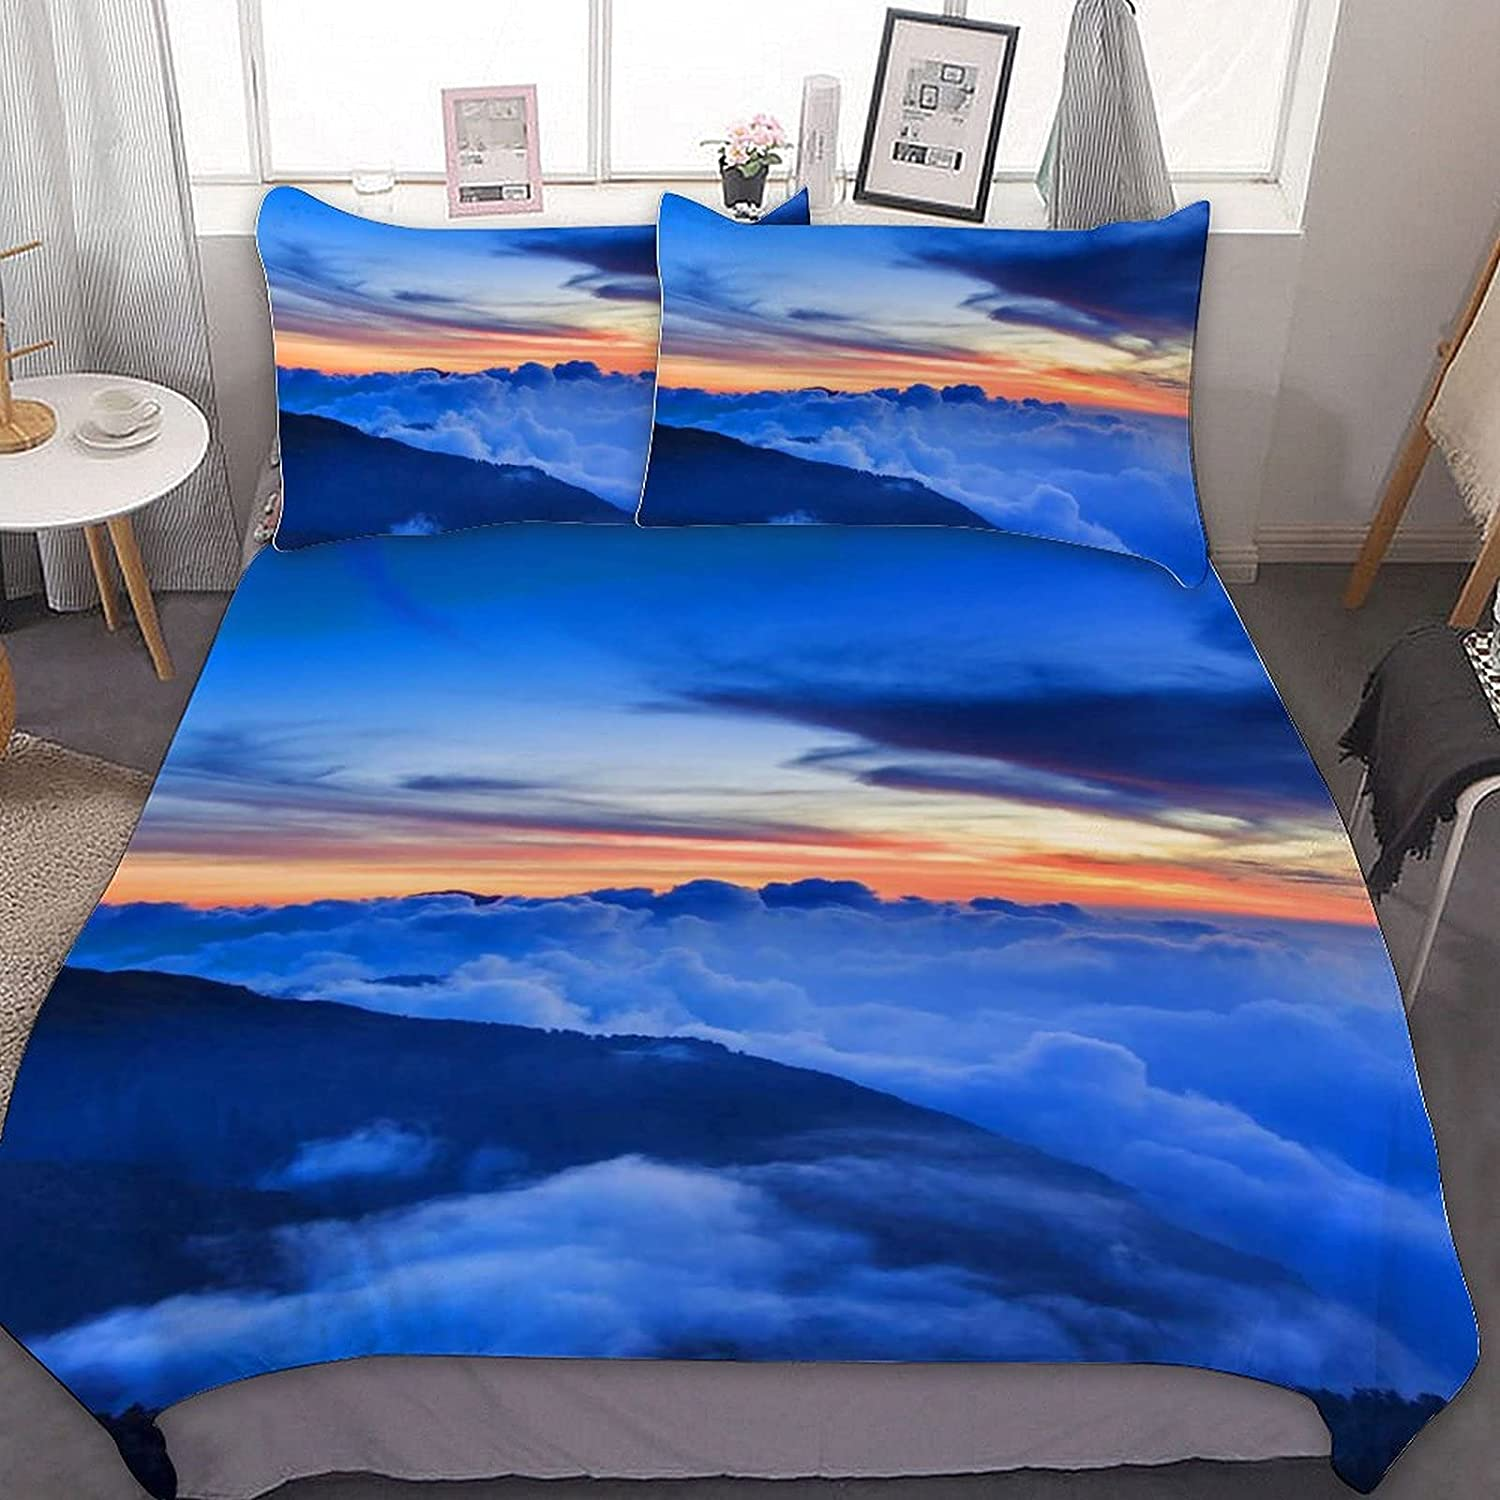 PNNUO Sunrise Clouds Queen Direct stock discount Bed Set Comforter Long Beach Mall King Twin Full Size